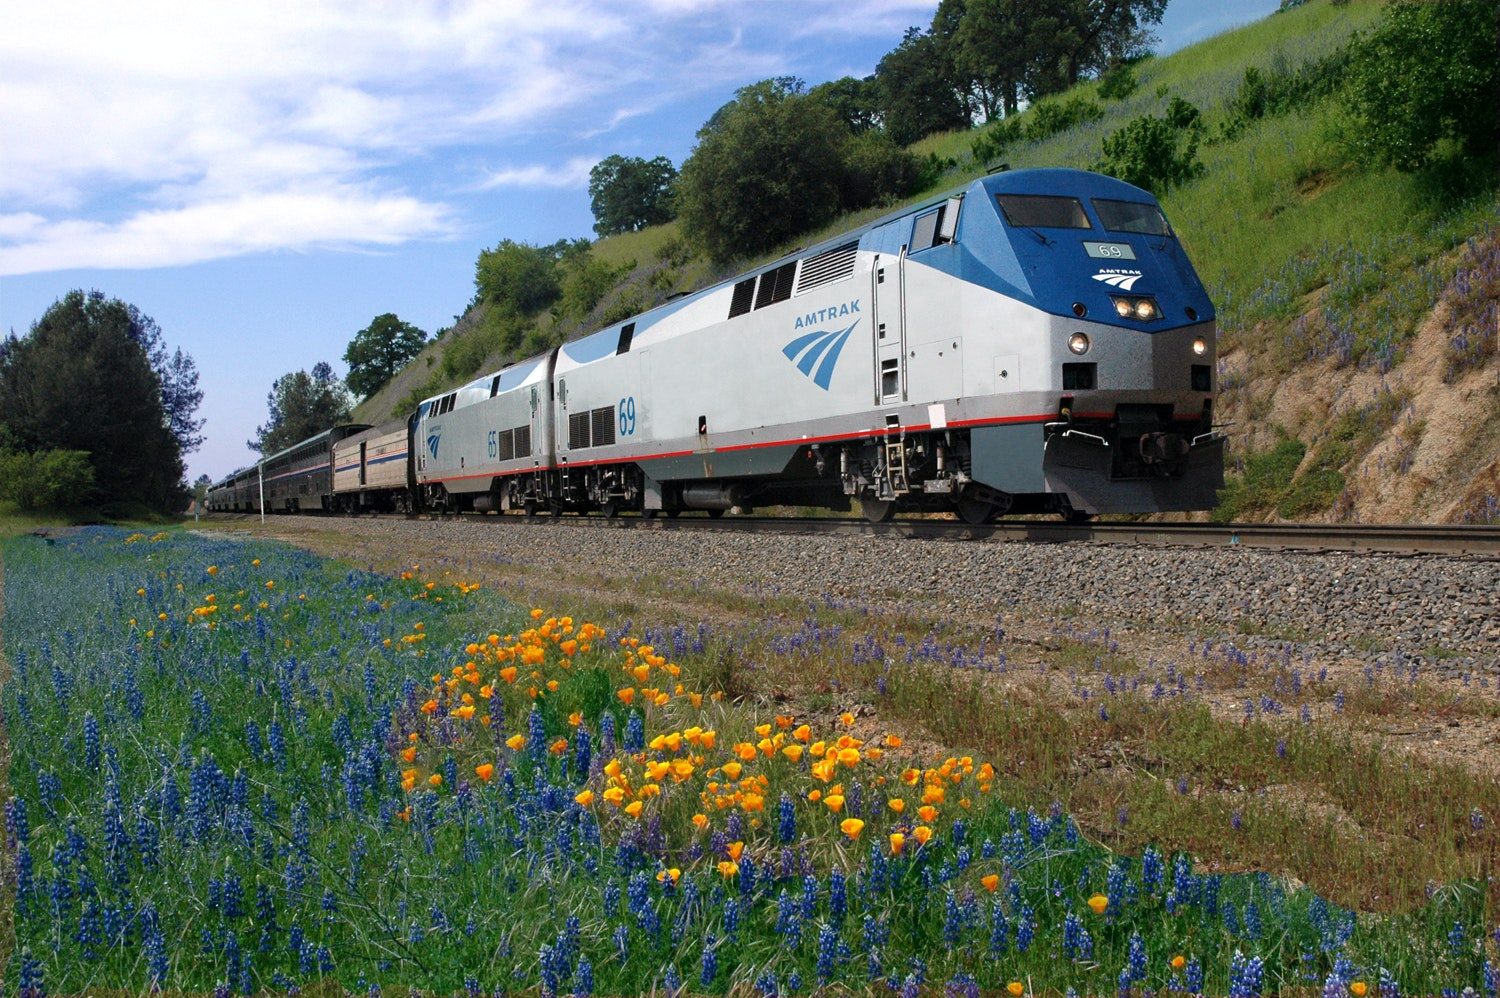 You'll get to see wildflowers blossom throughout the Rocky Mountains and the Sierra Nevadas on the California Zephyr.